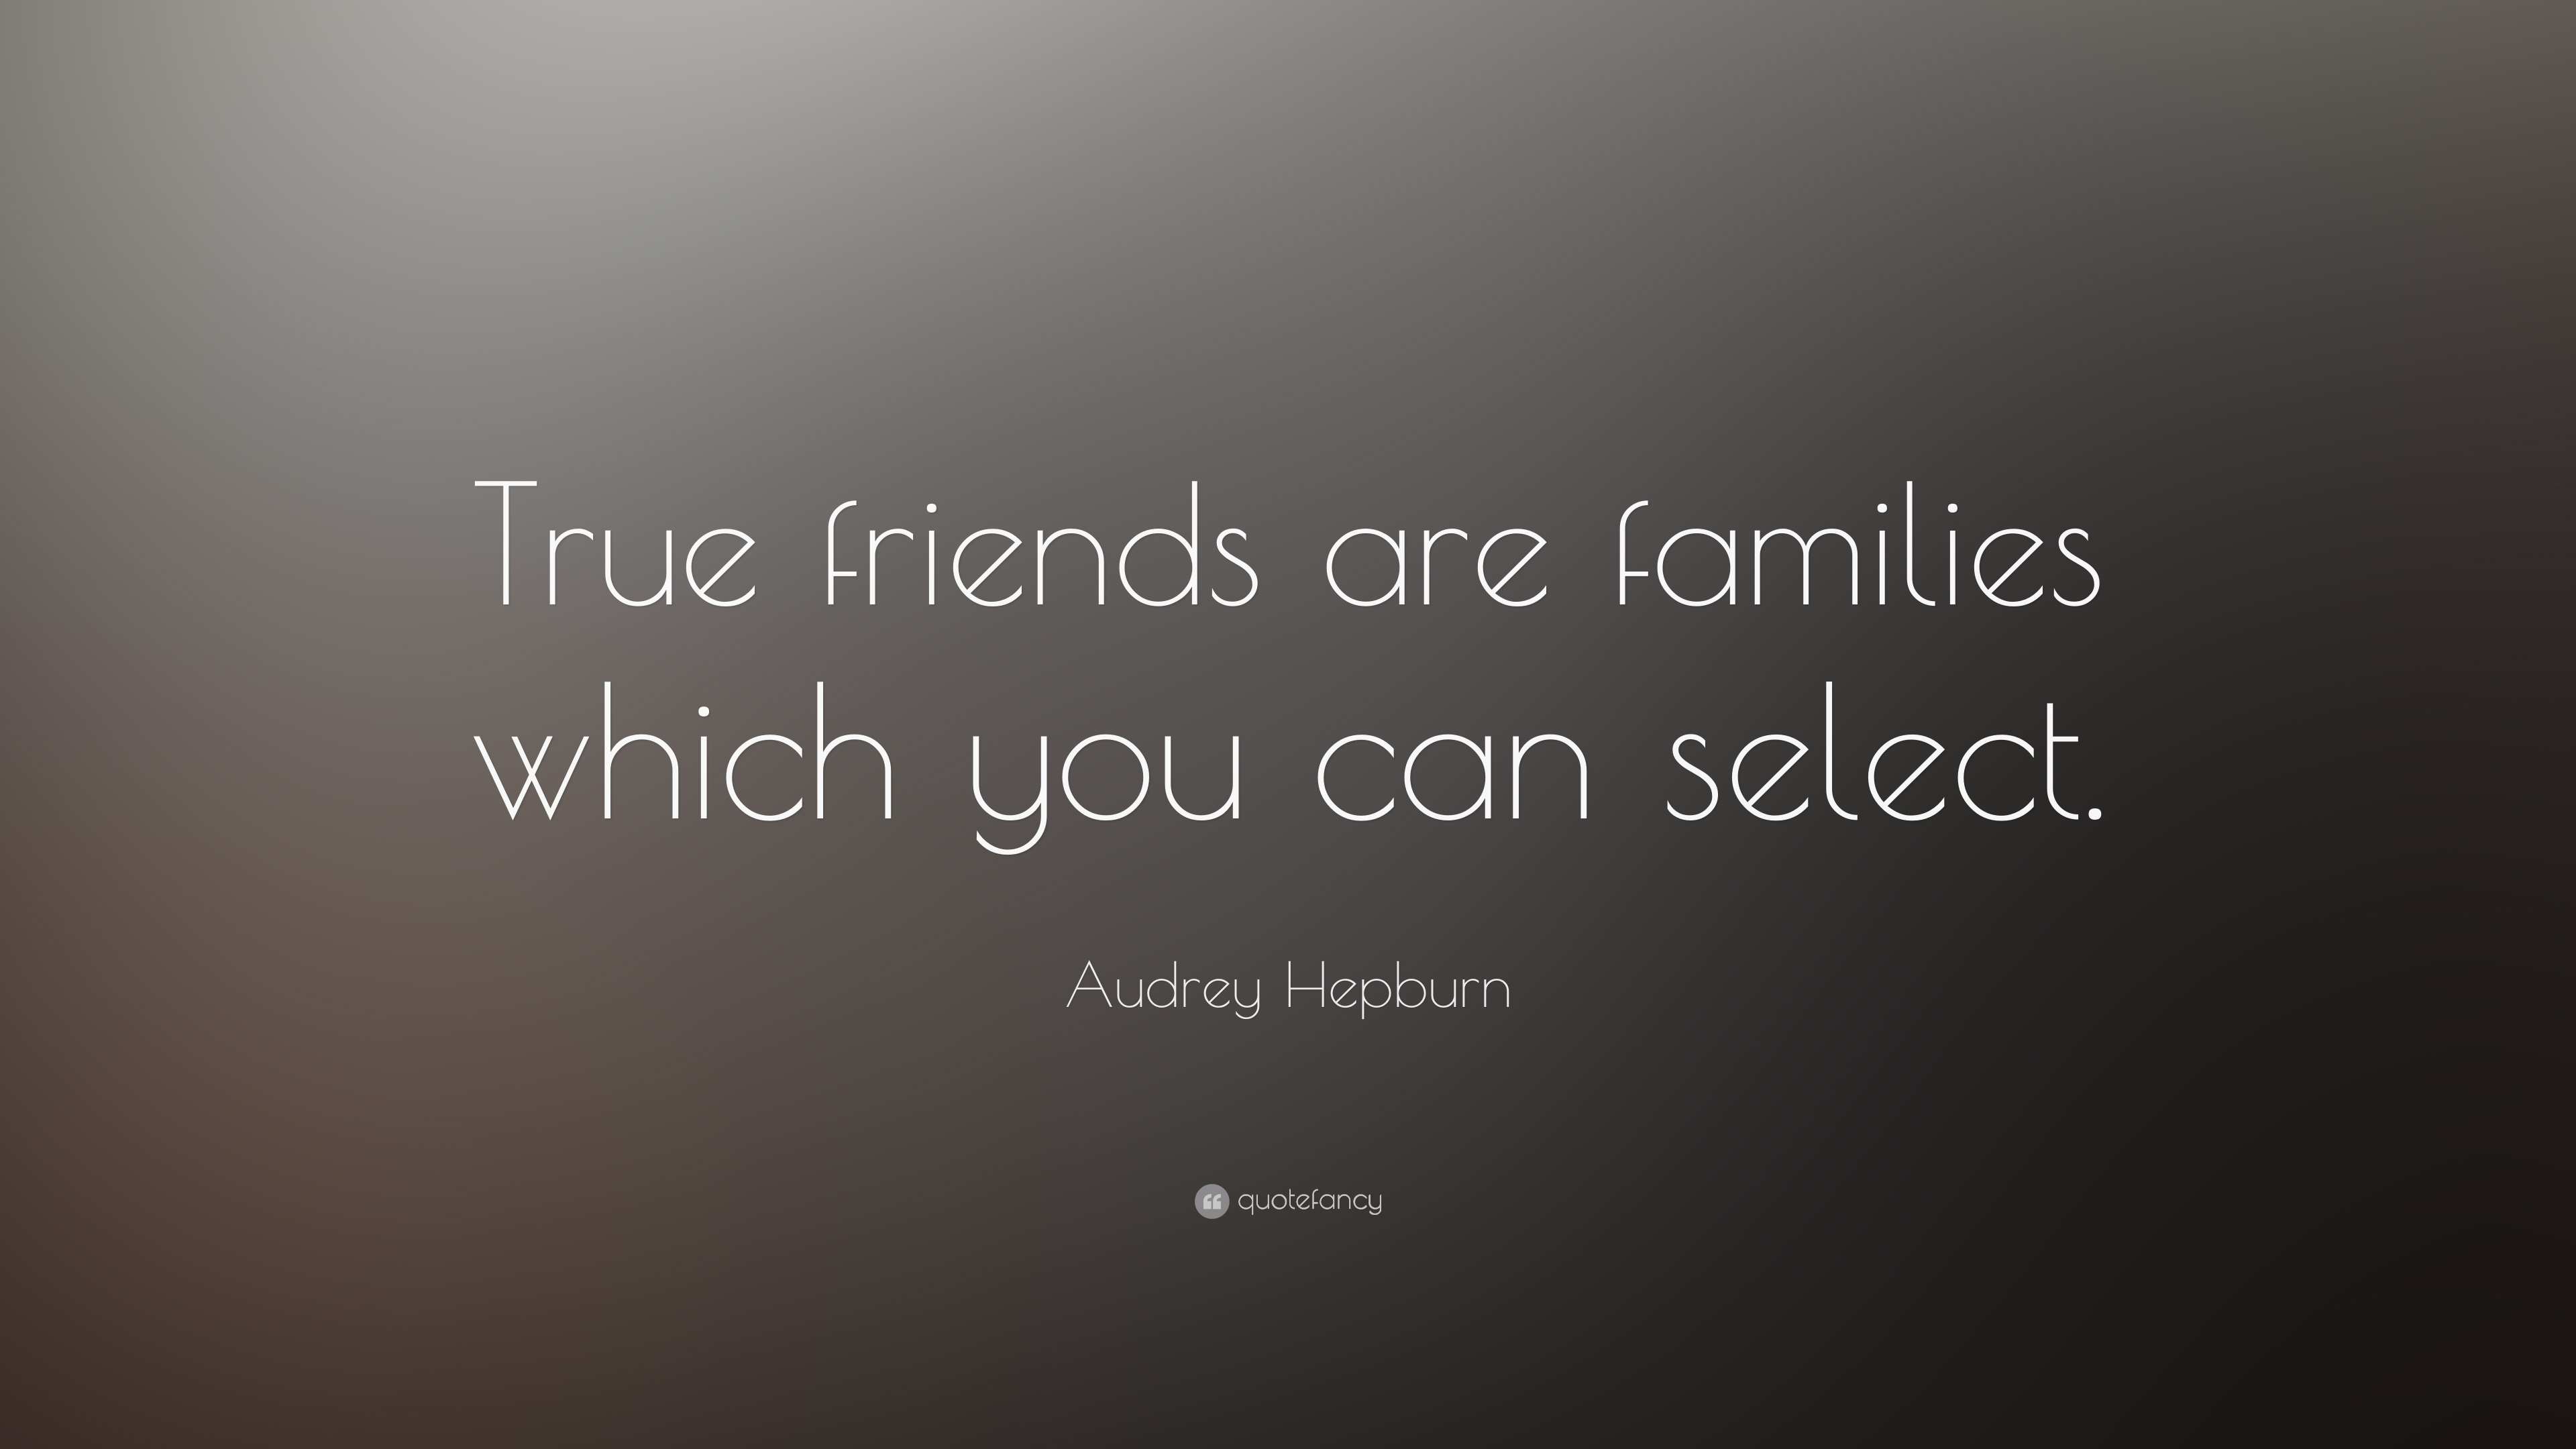 audrey hepburn friendship quotes